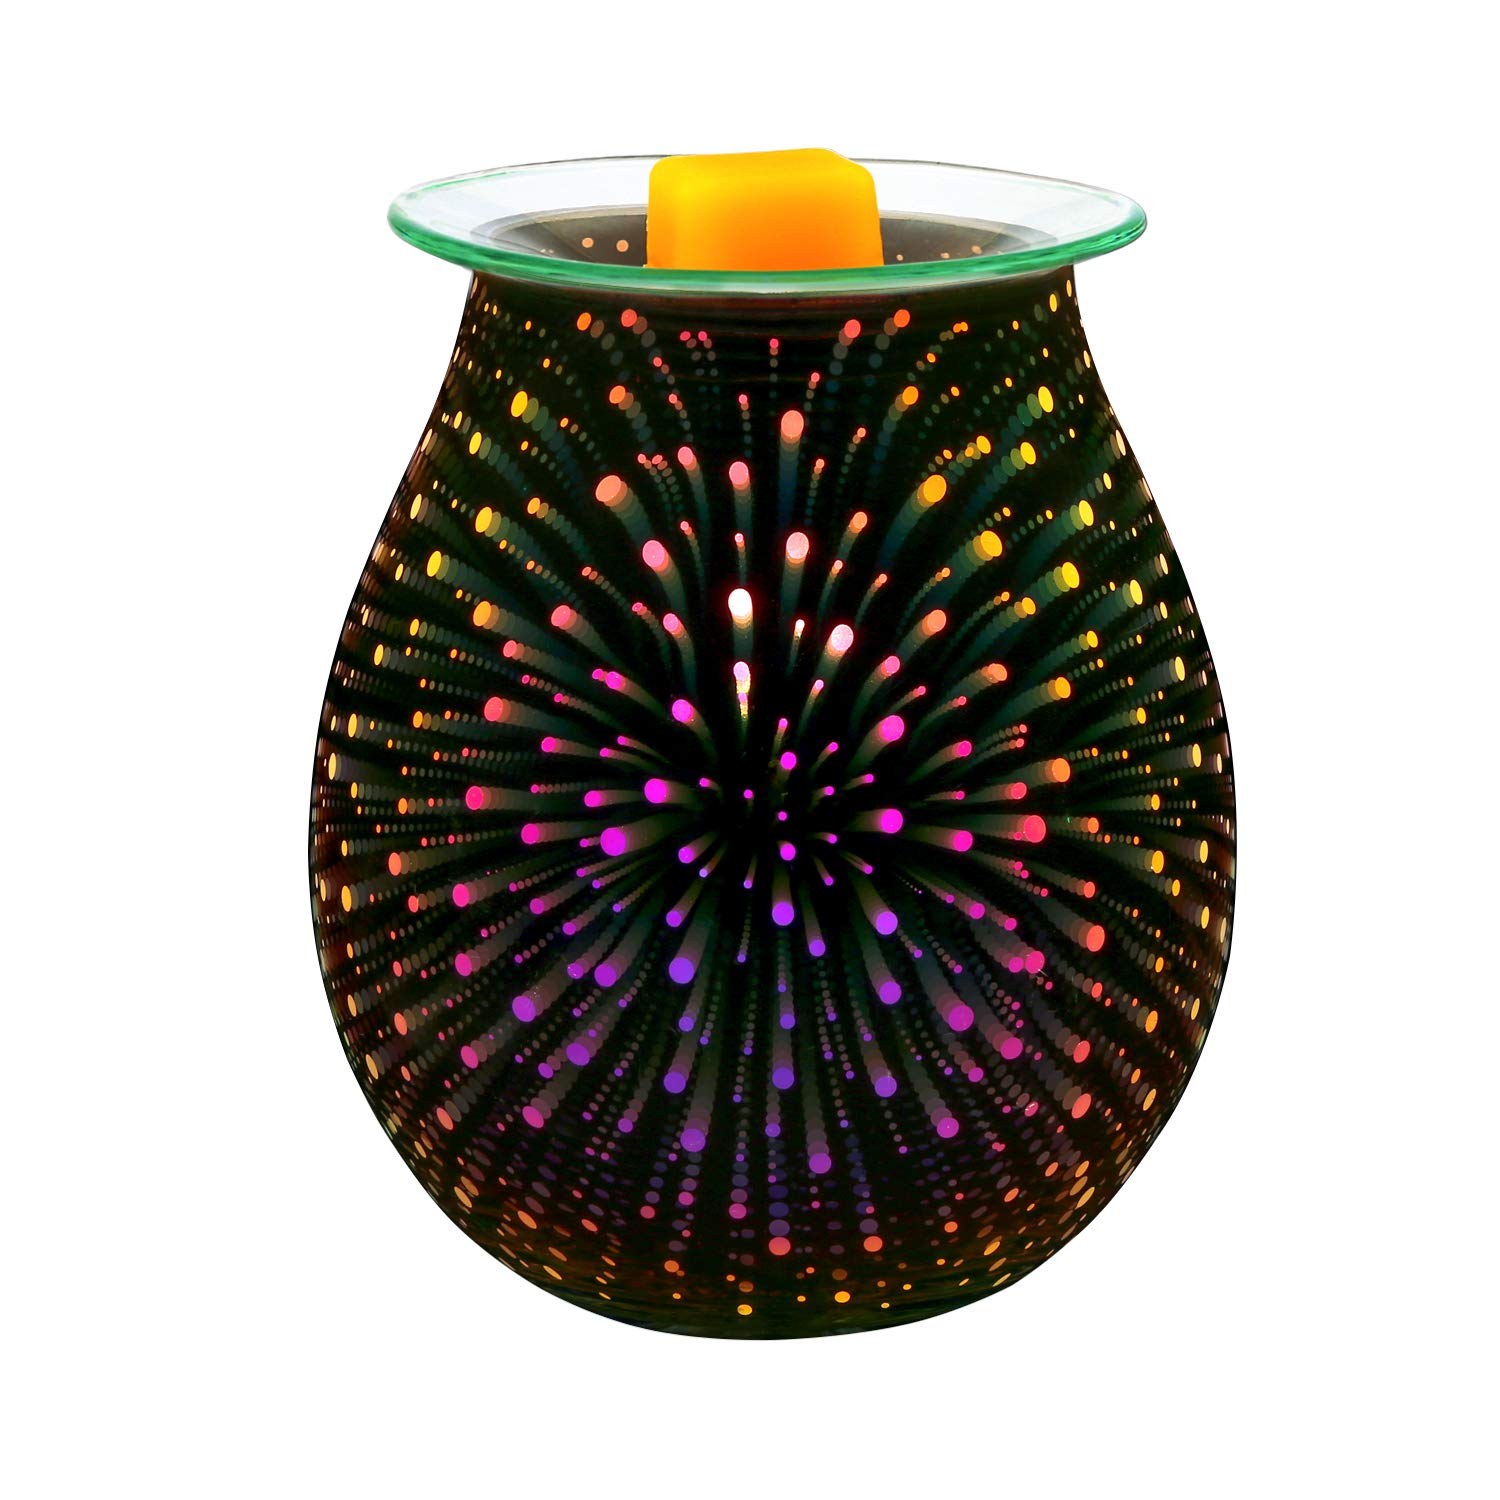 Electric Oil Warmer COOSA 3D Effect Starburst Fireworks Glass Wax Tart Burner Fragrance Candle Warmer Incense Oil Night Light Aroma Decorative Lamp for Gifts, Decor for Home Office by COOSA (Image #1)